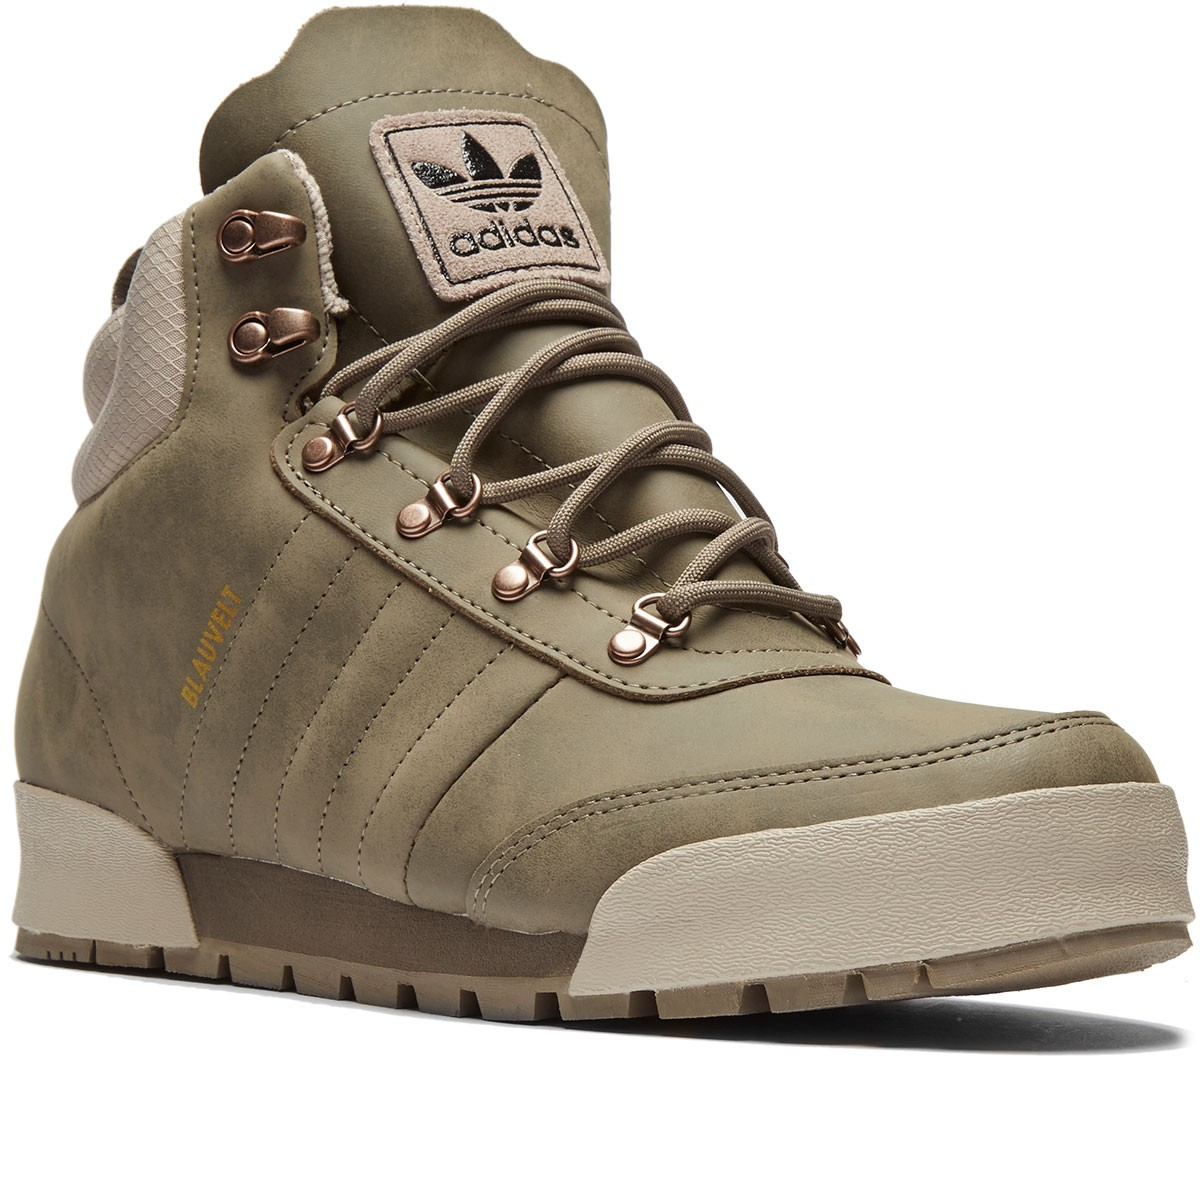 0902518f1c8 Adidas Jake Boot 2.0 Shoes